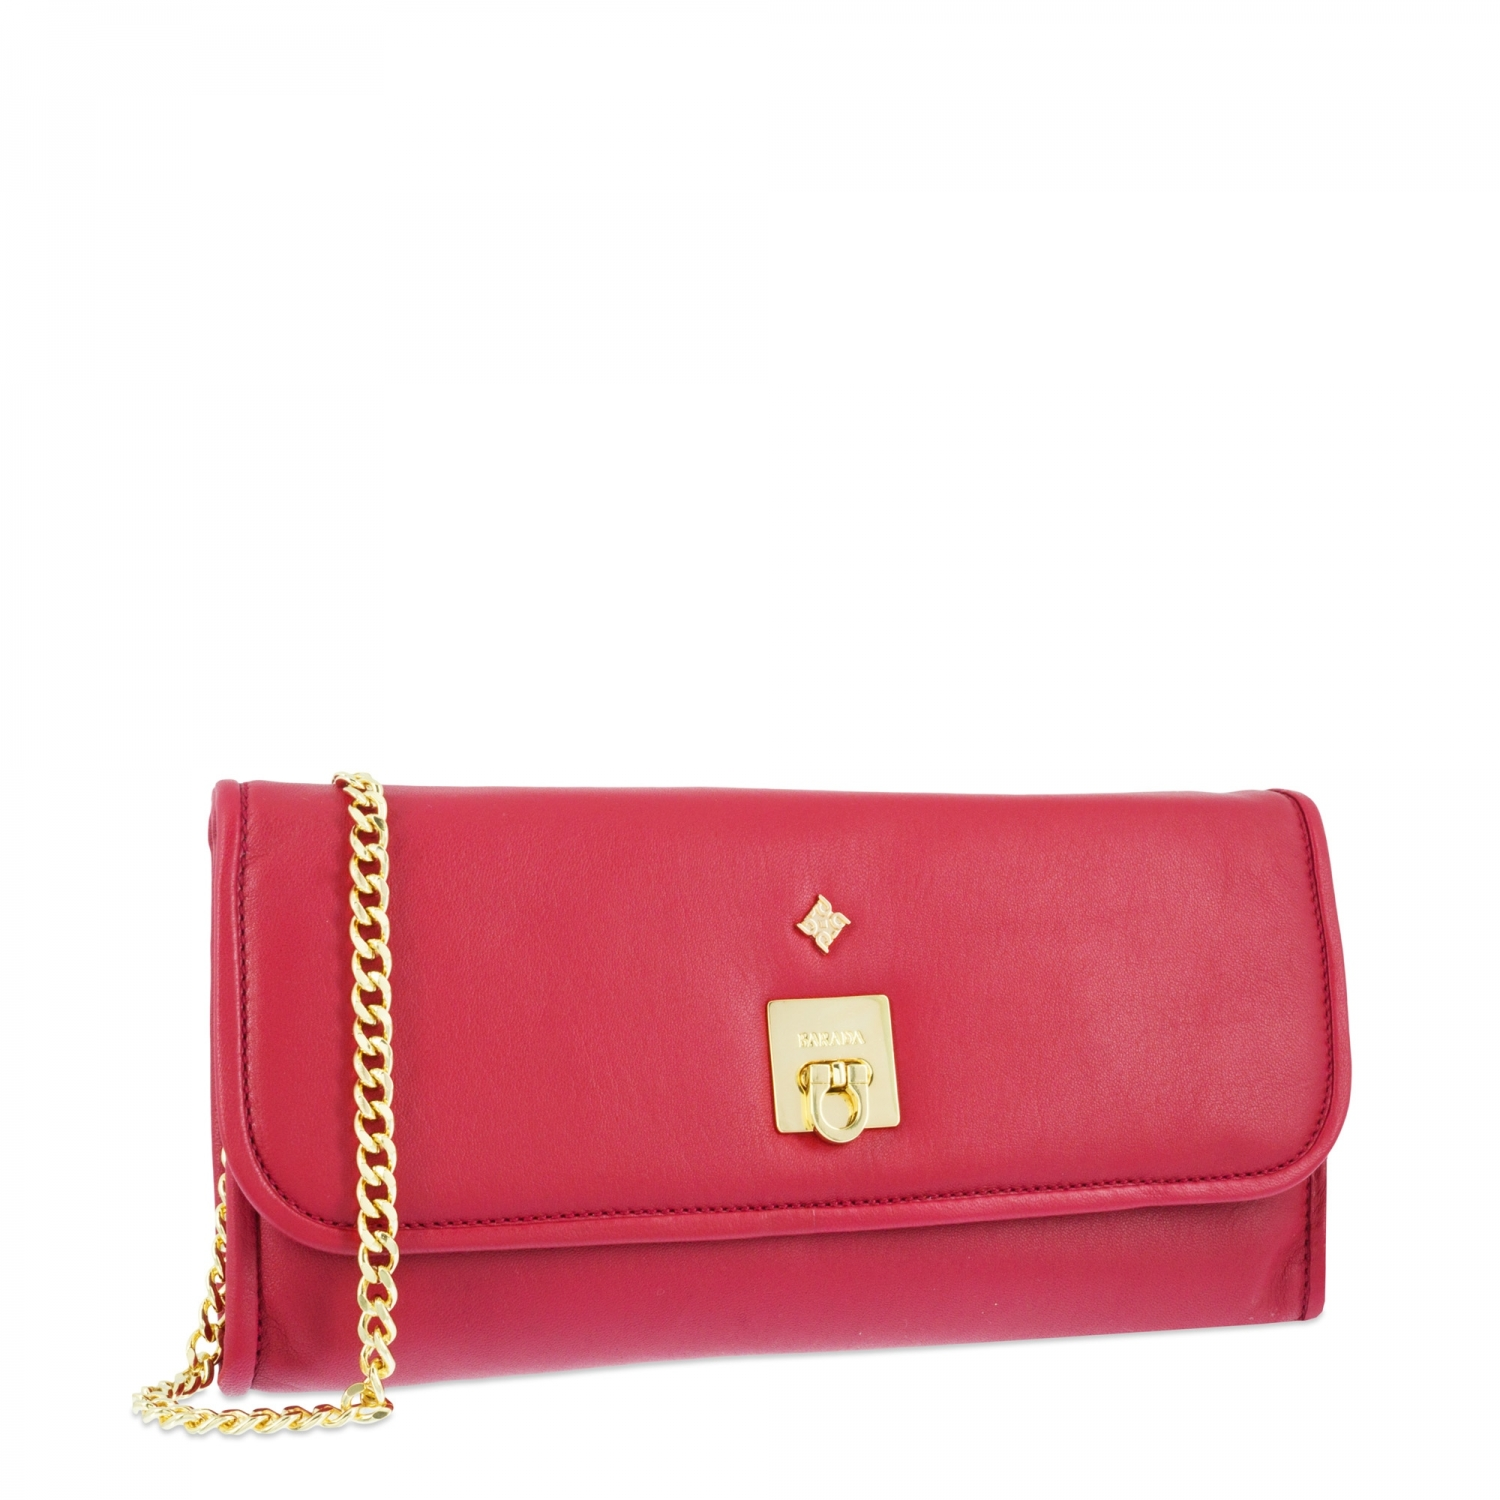 Evening Bag Collection Fiesta In Napa Leather Lambskin And Red Colour